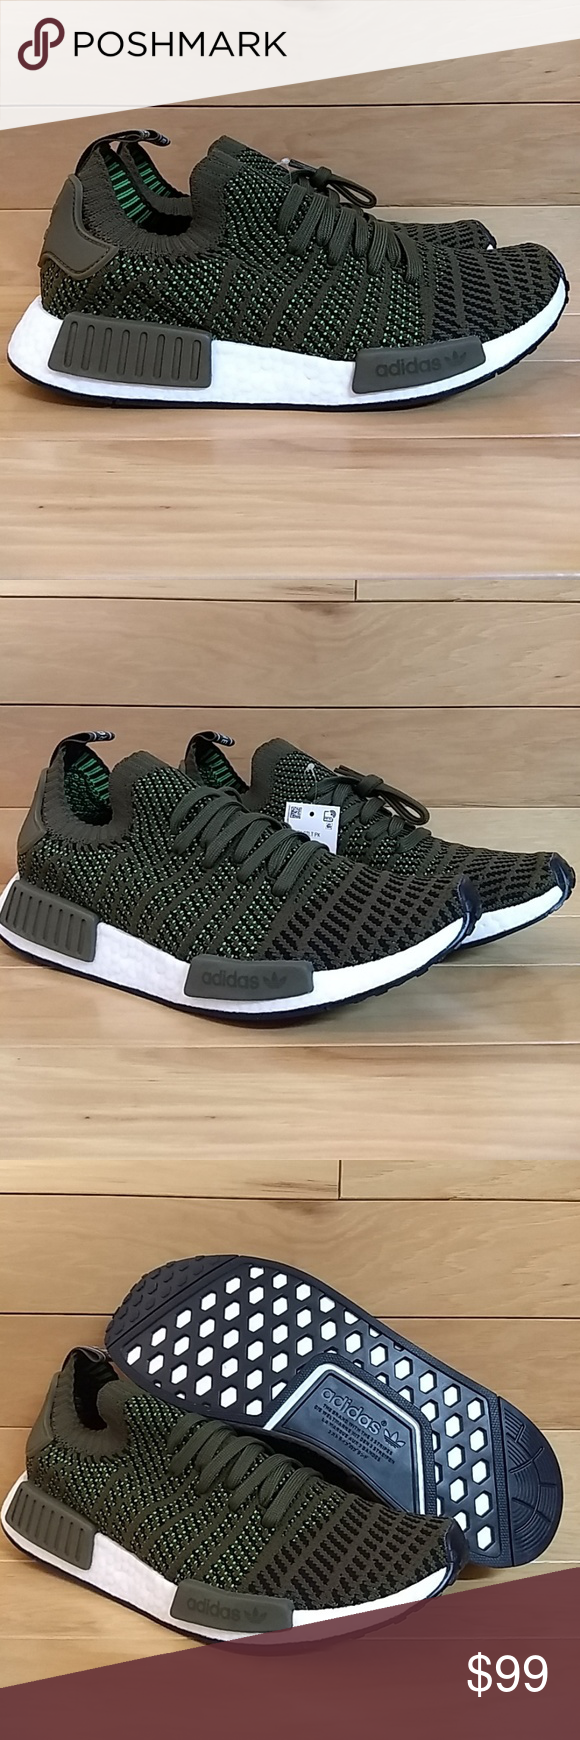 a7902ff8b4e13 Adidas NMD R1 STLT PK Trace Olive Green CQ2389 Item  Adidas NMD R1 Stlt Pk  Code  CQ2389 Size  10 Condition  New. With Box. Will ship double boxed.